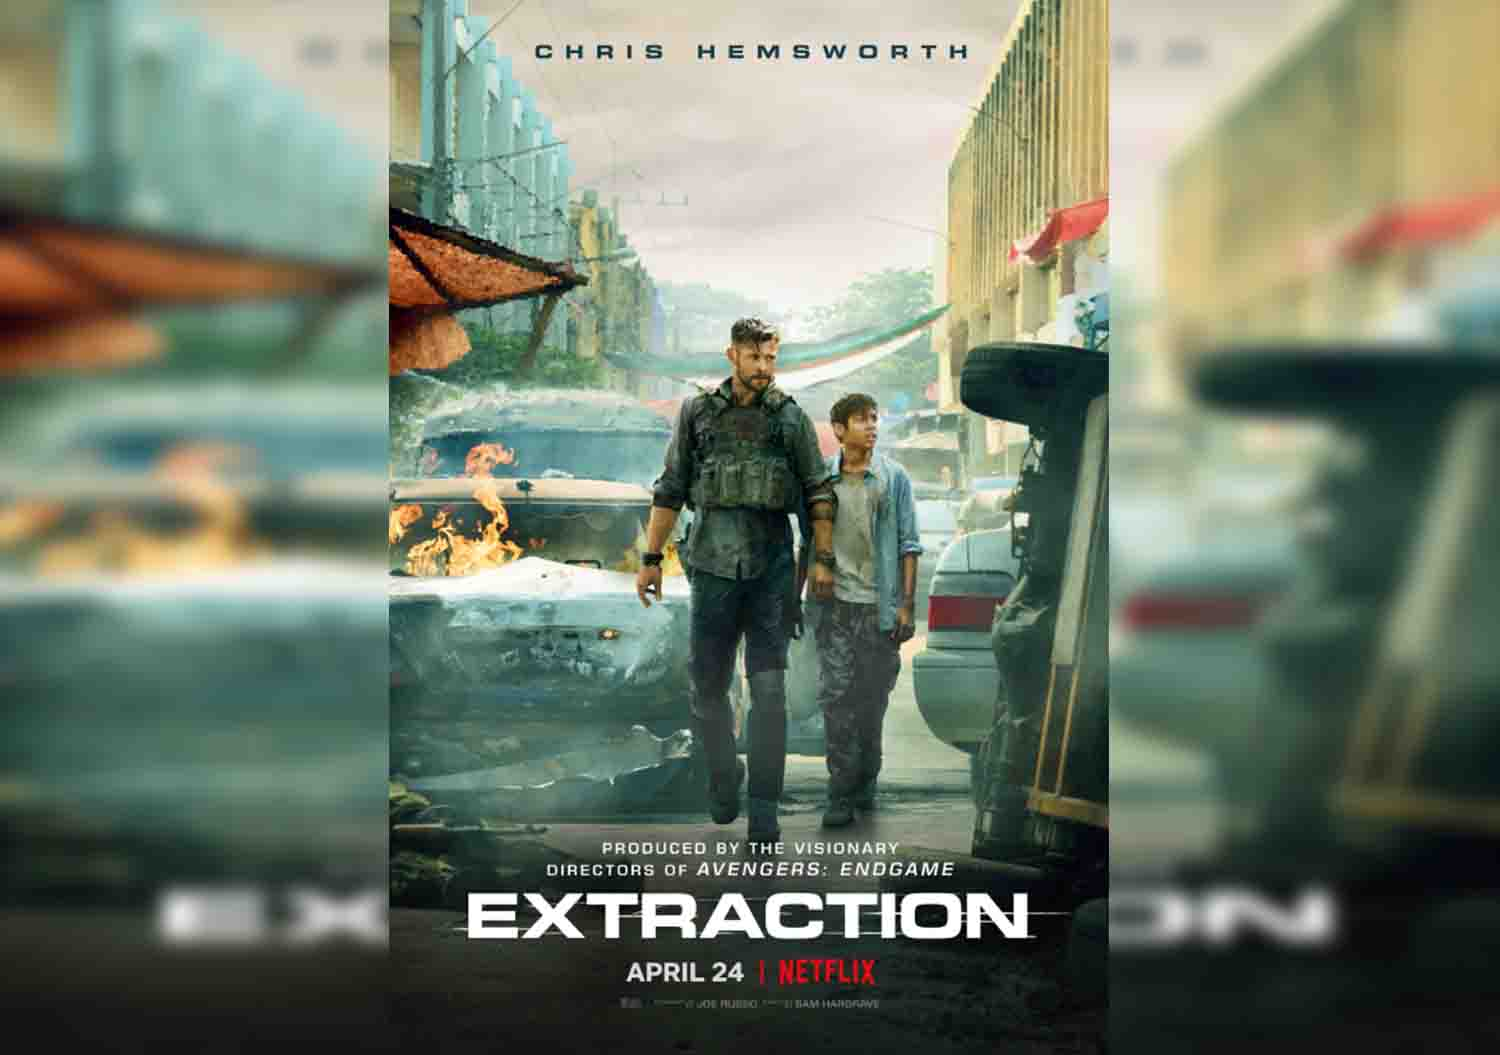 Netflix have released the action-packed trailer for their new movie Extraction